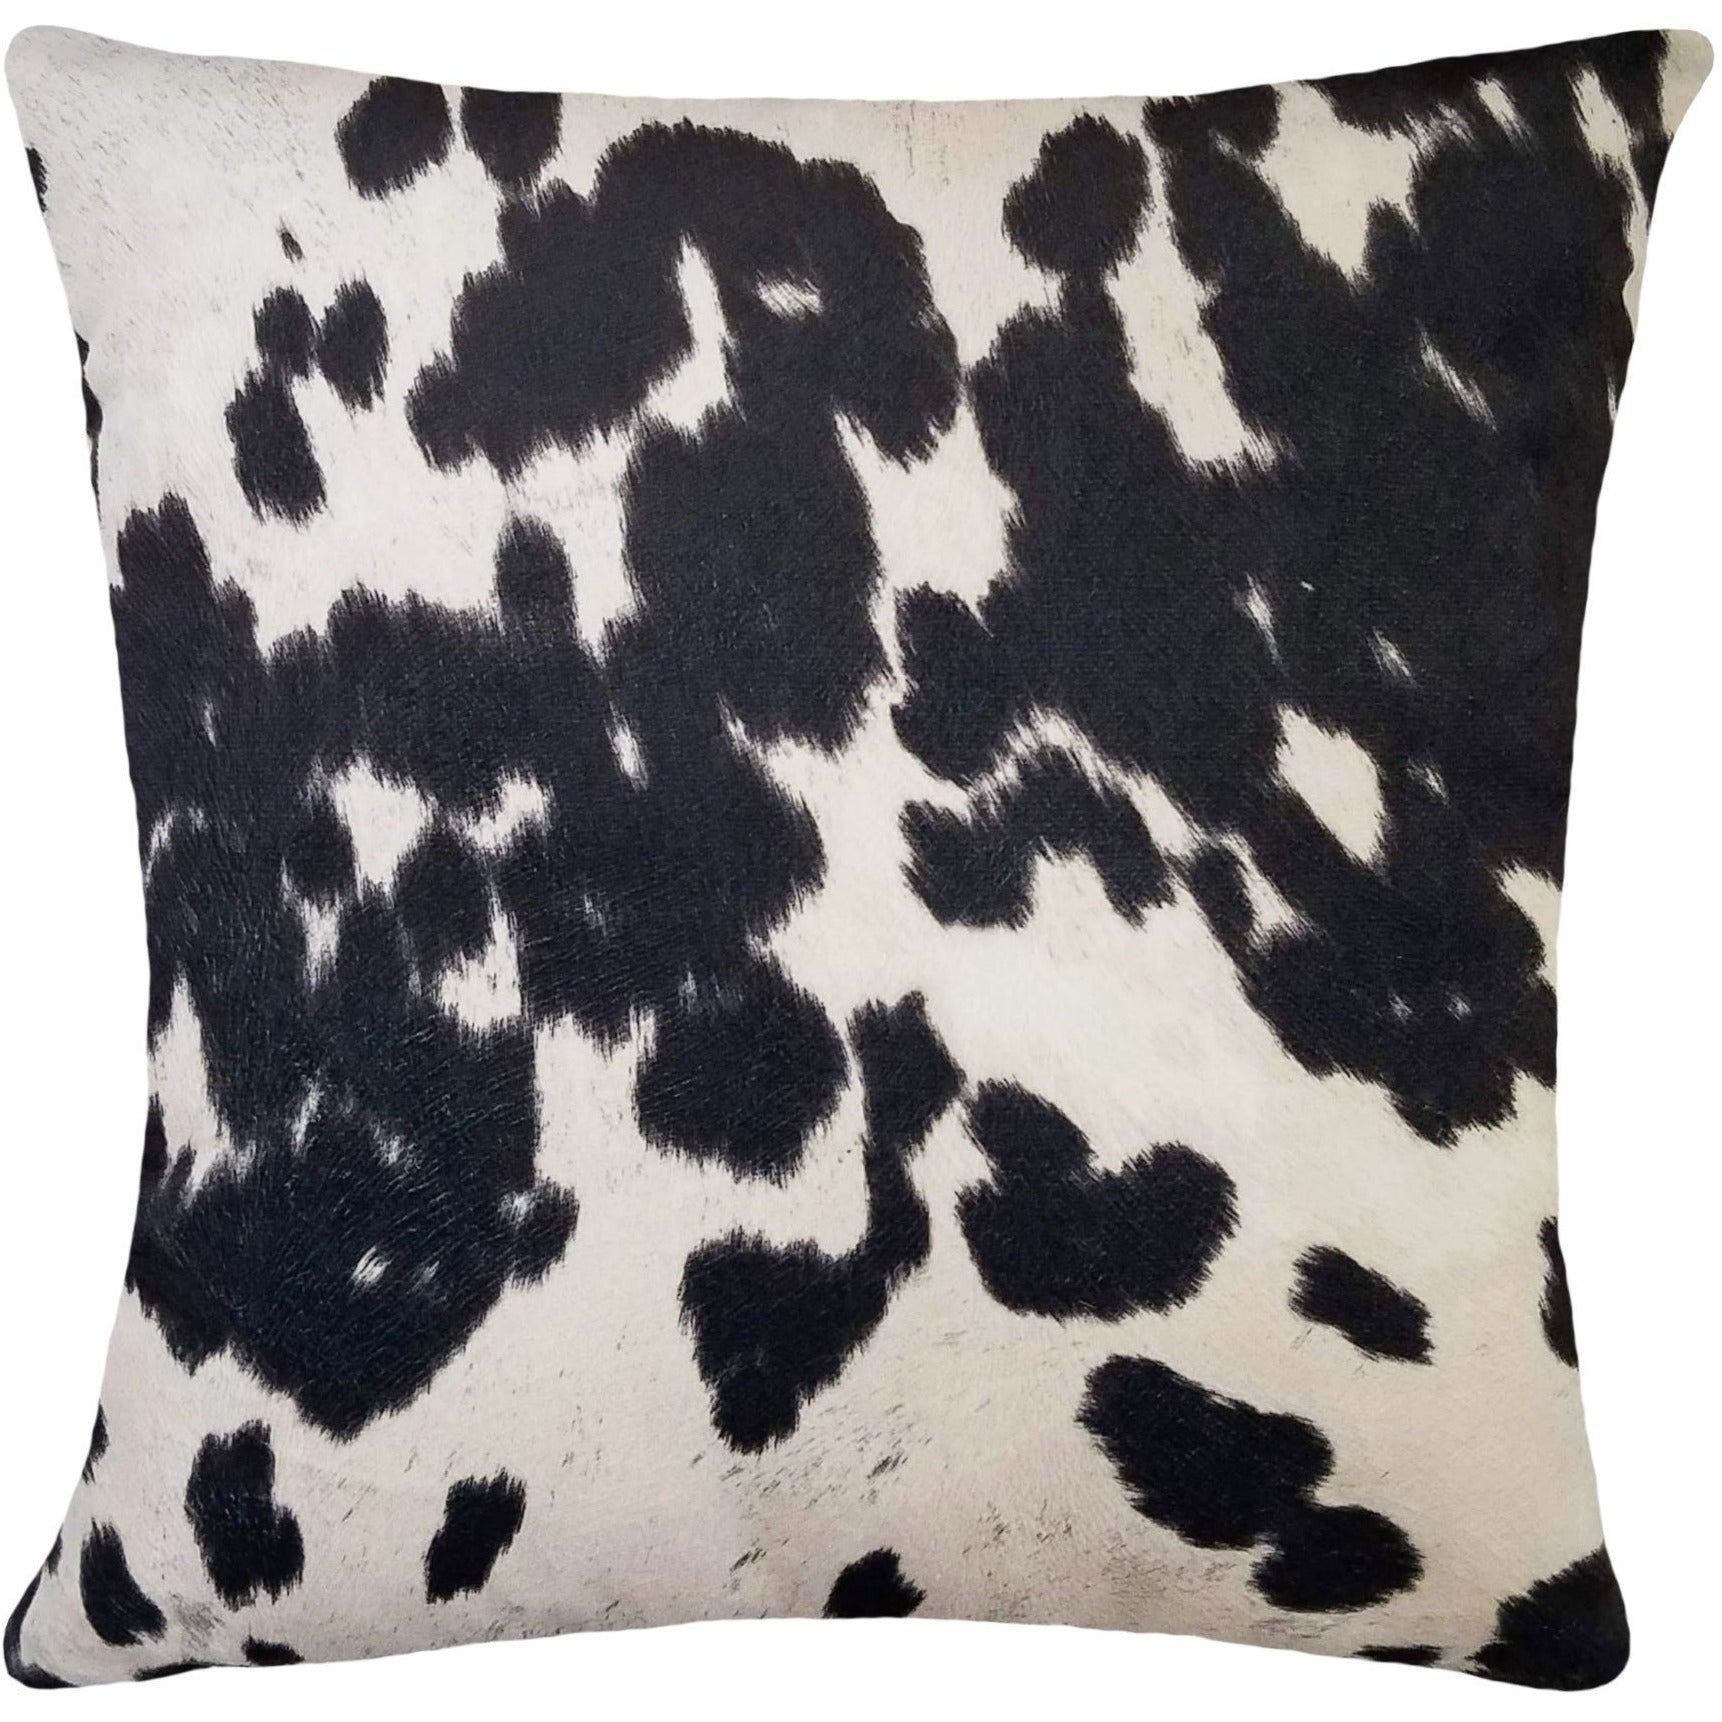 Lux Black Faux Cowhide Pillow